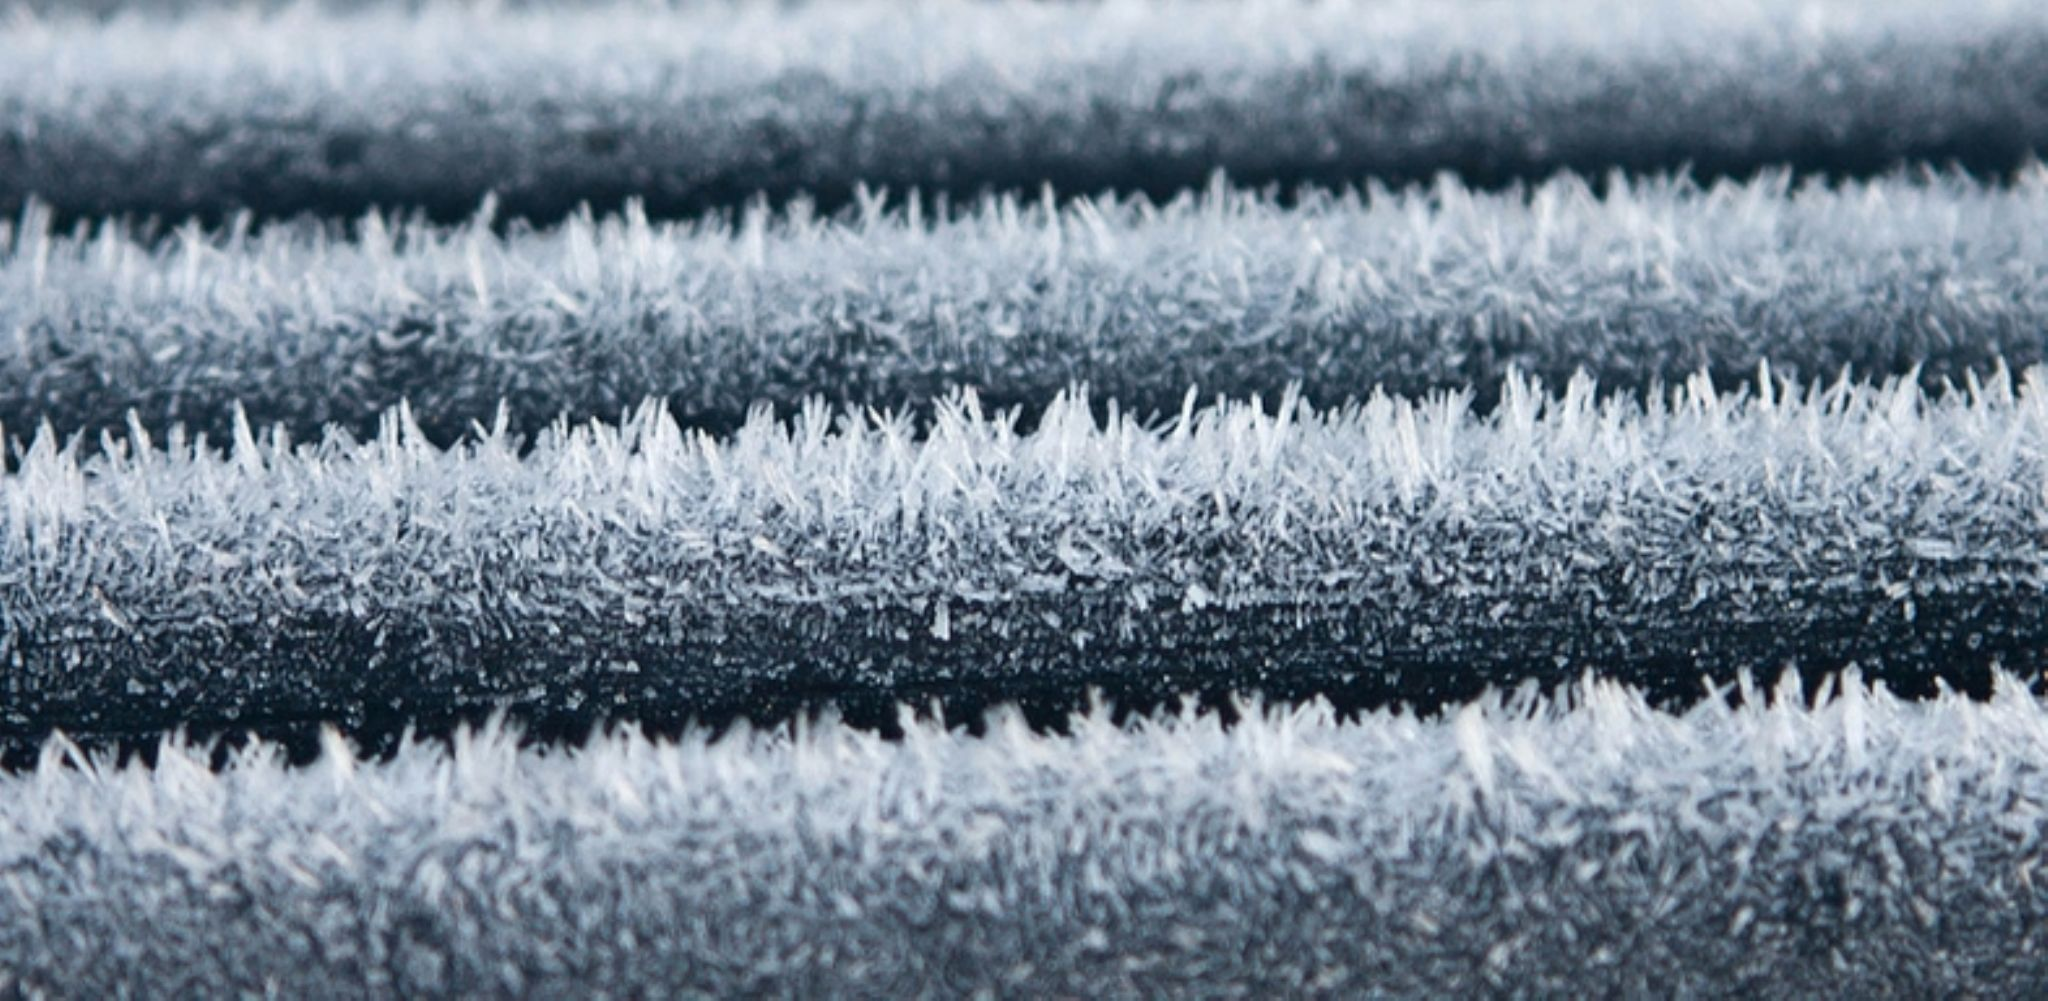 frosty pipes by younis.khan.52